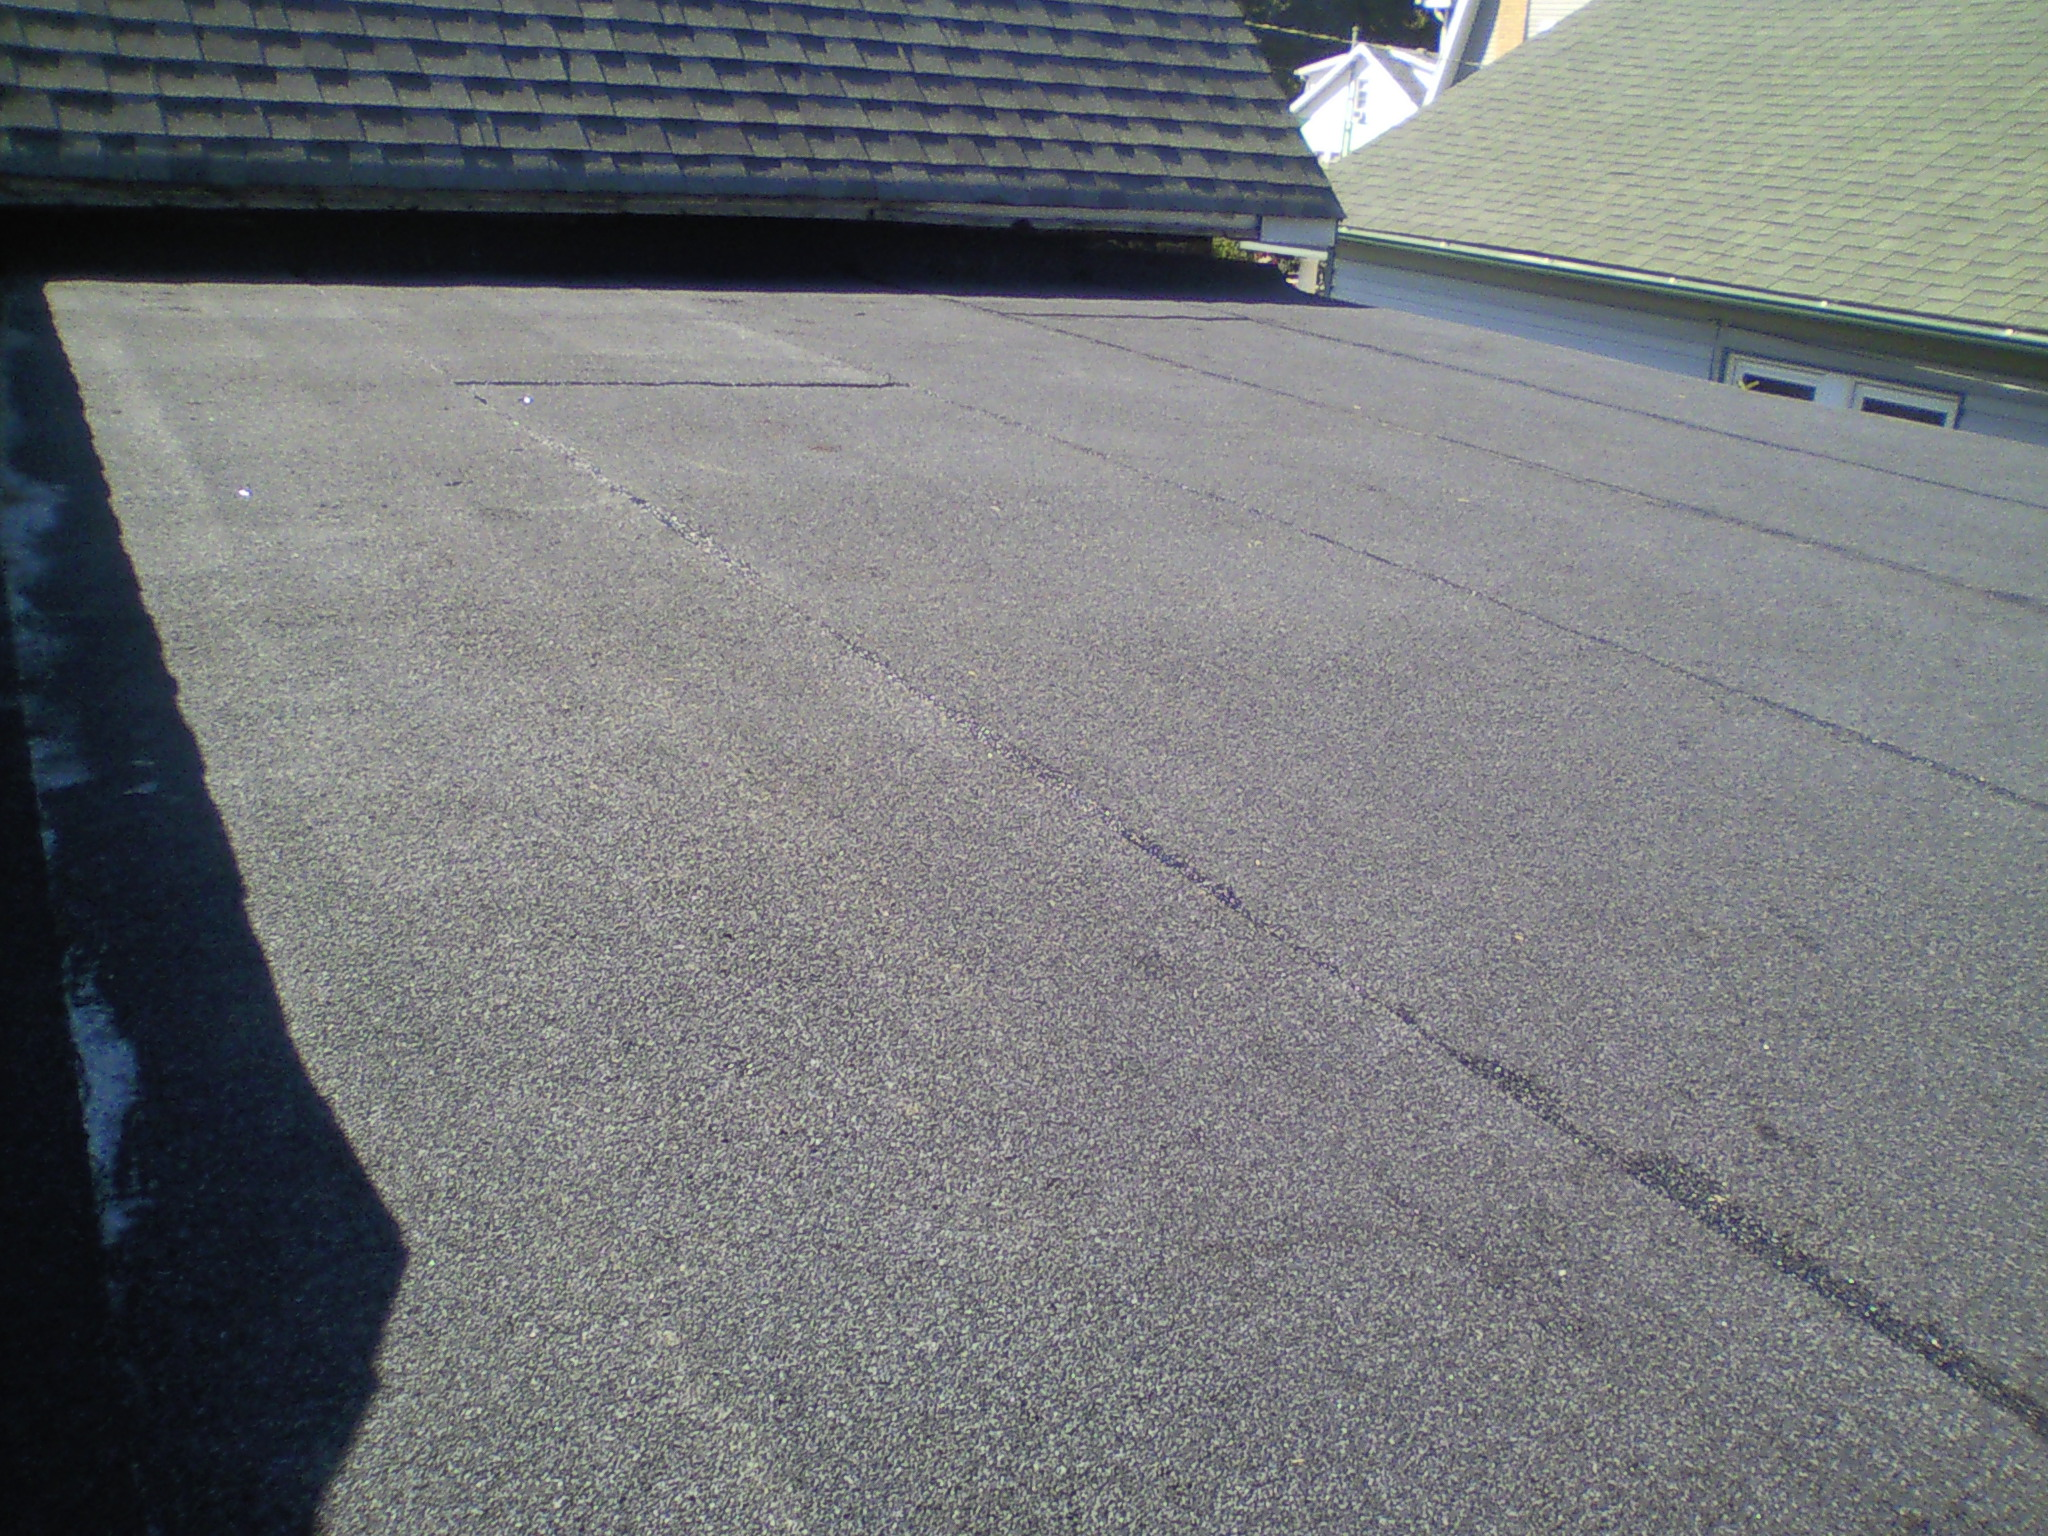 This picture shows the new roof covering.